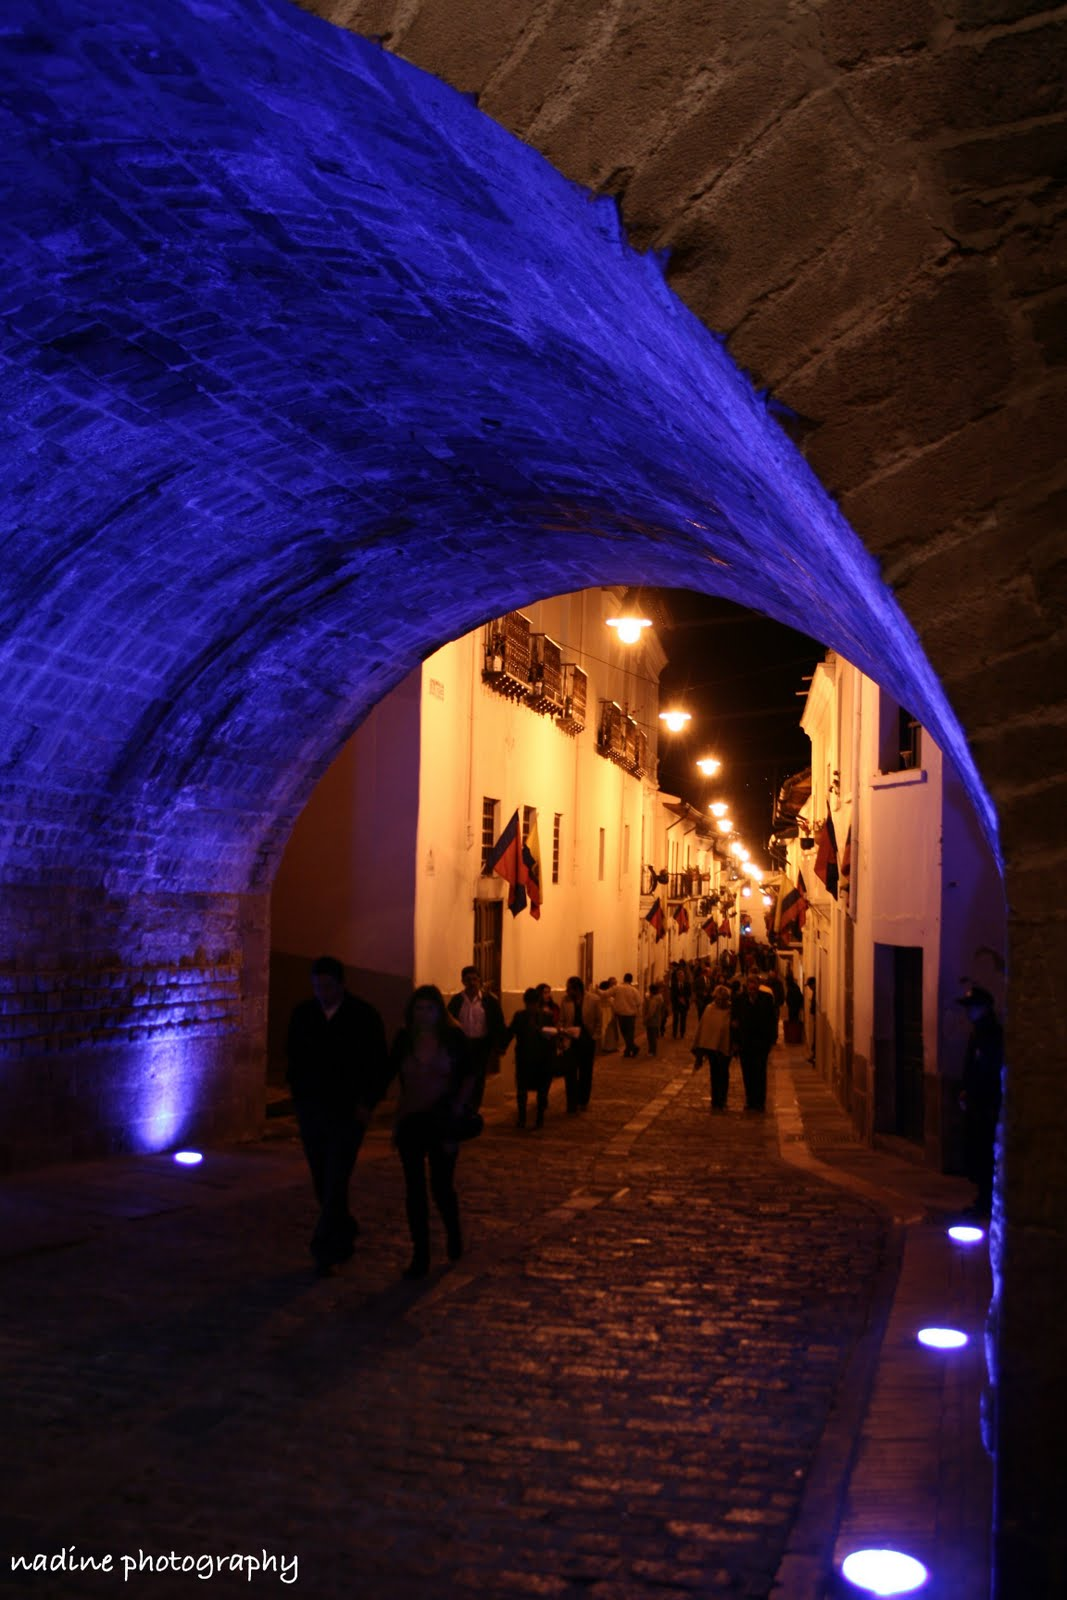 [quito+tunnel]